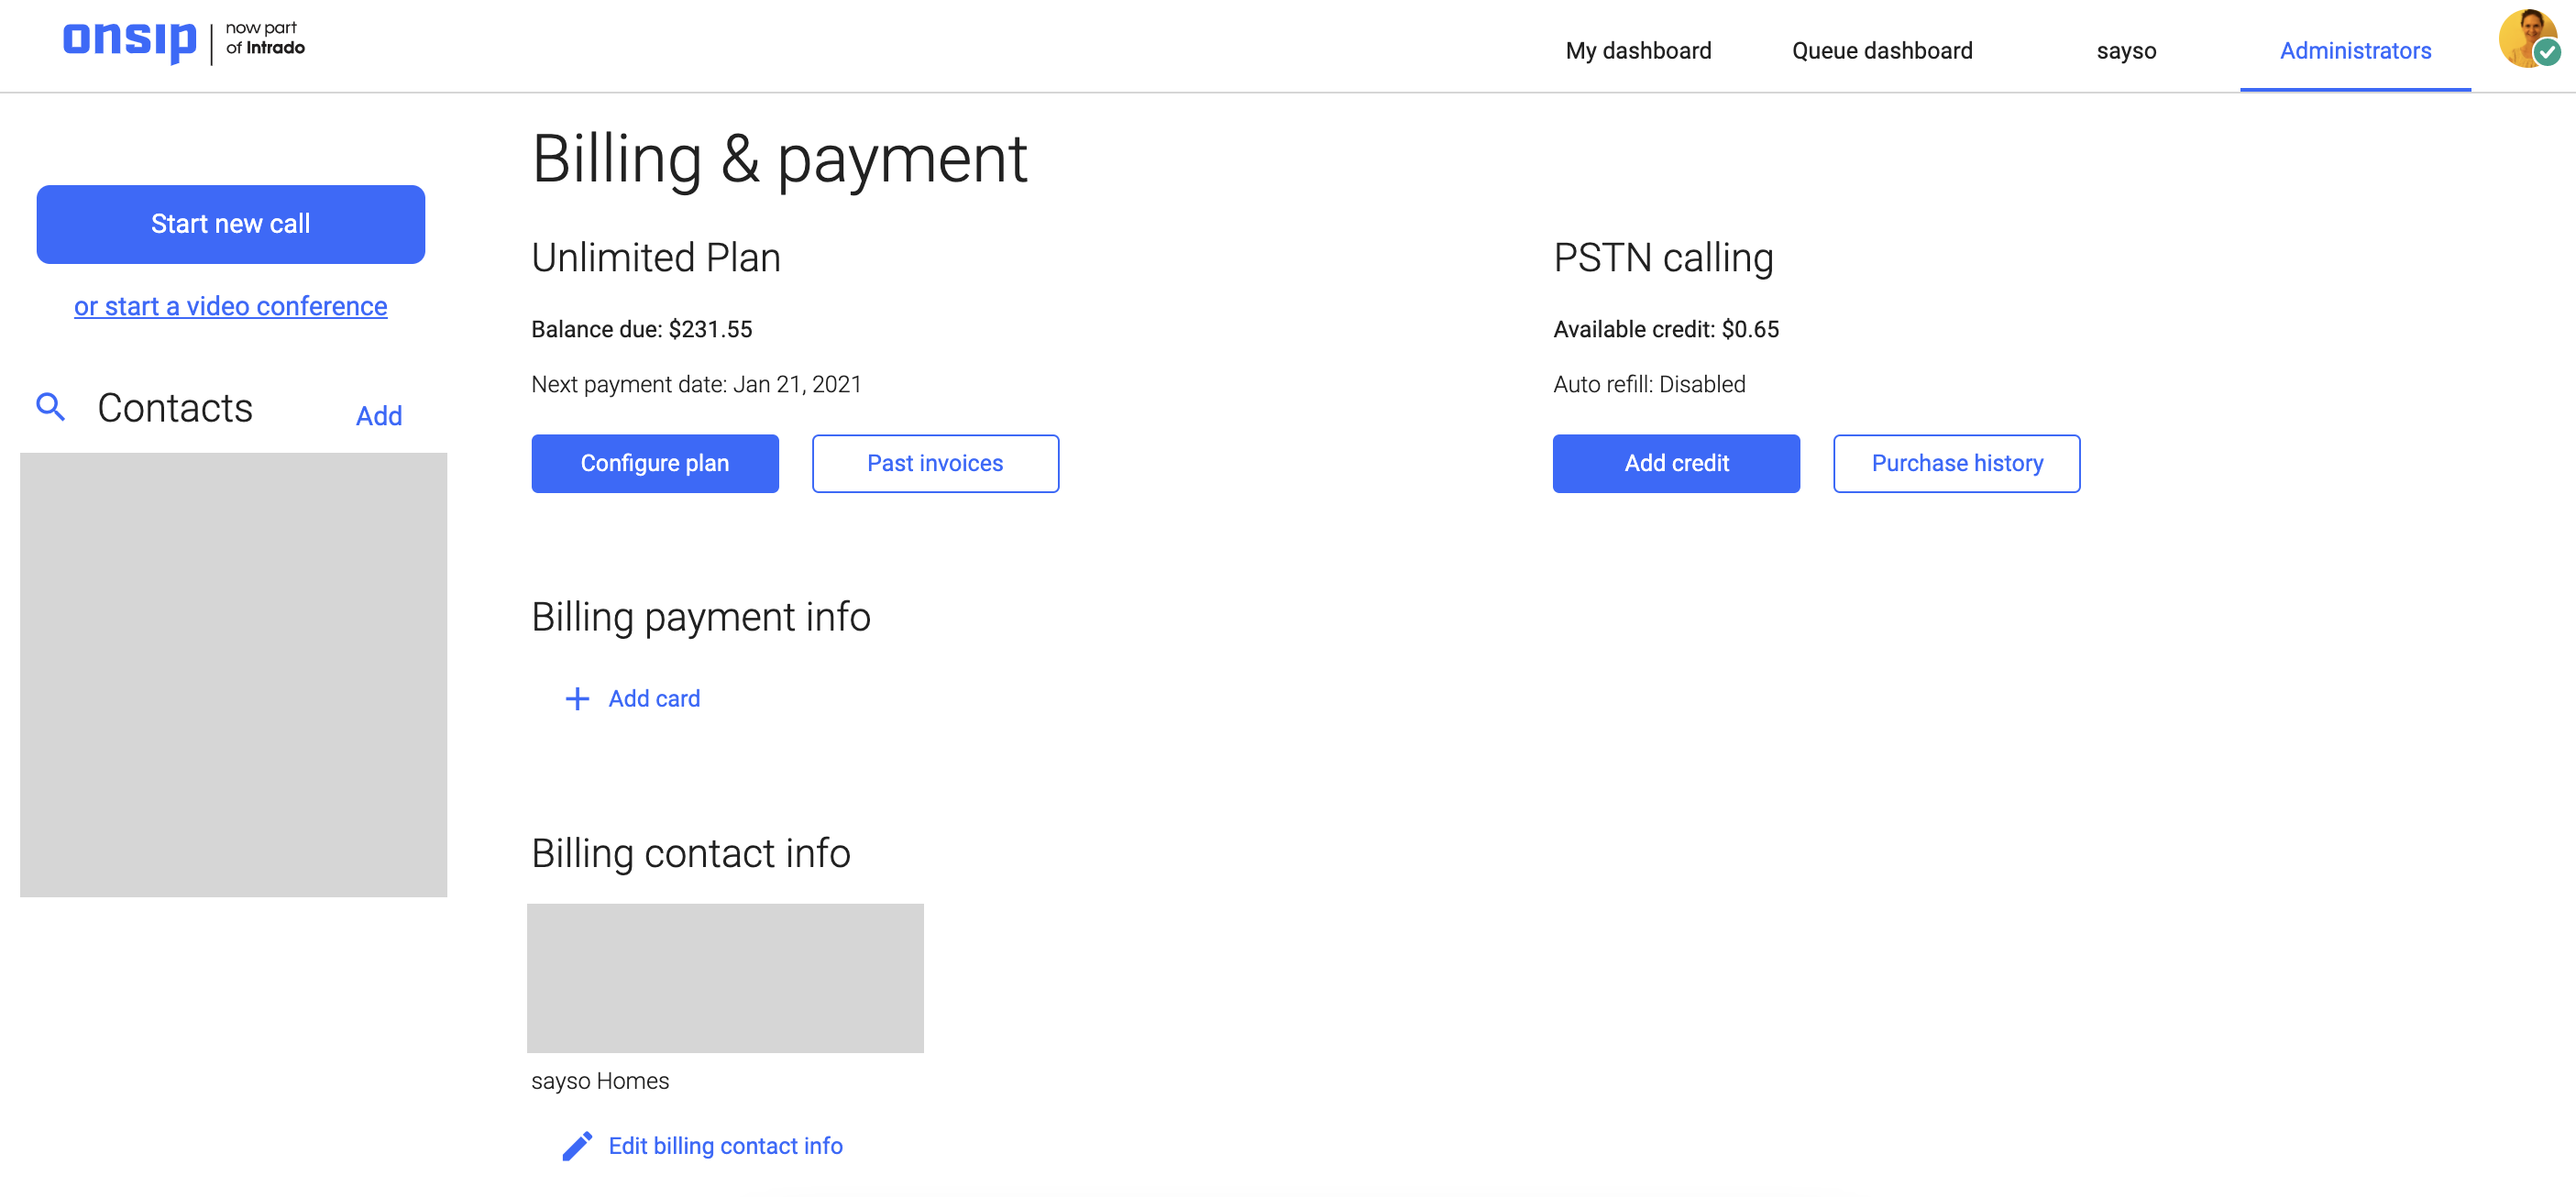 Screenshot of OnSIP billing and payment information in the Admin Portal.